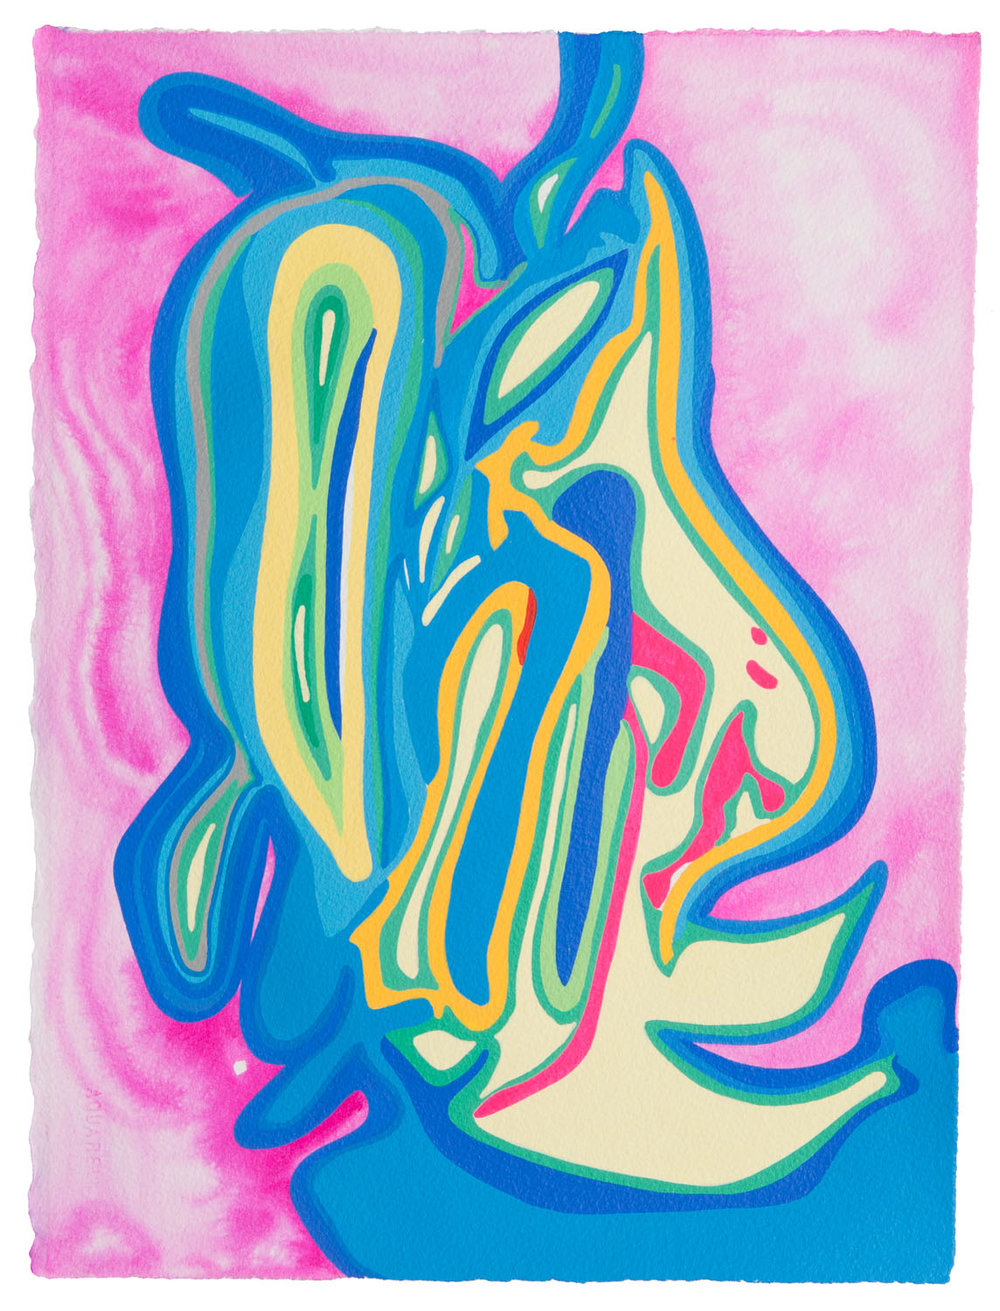 untitled x, 2017 15 x 11 1/2 inches gouache on paper 100-124